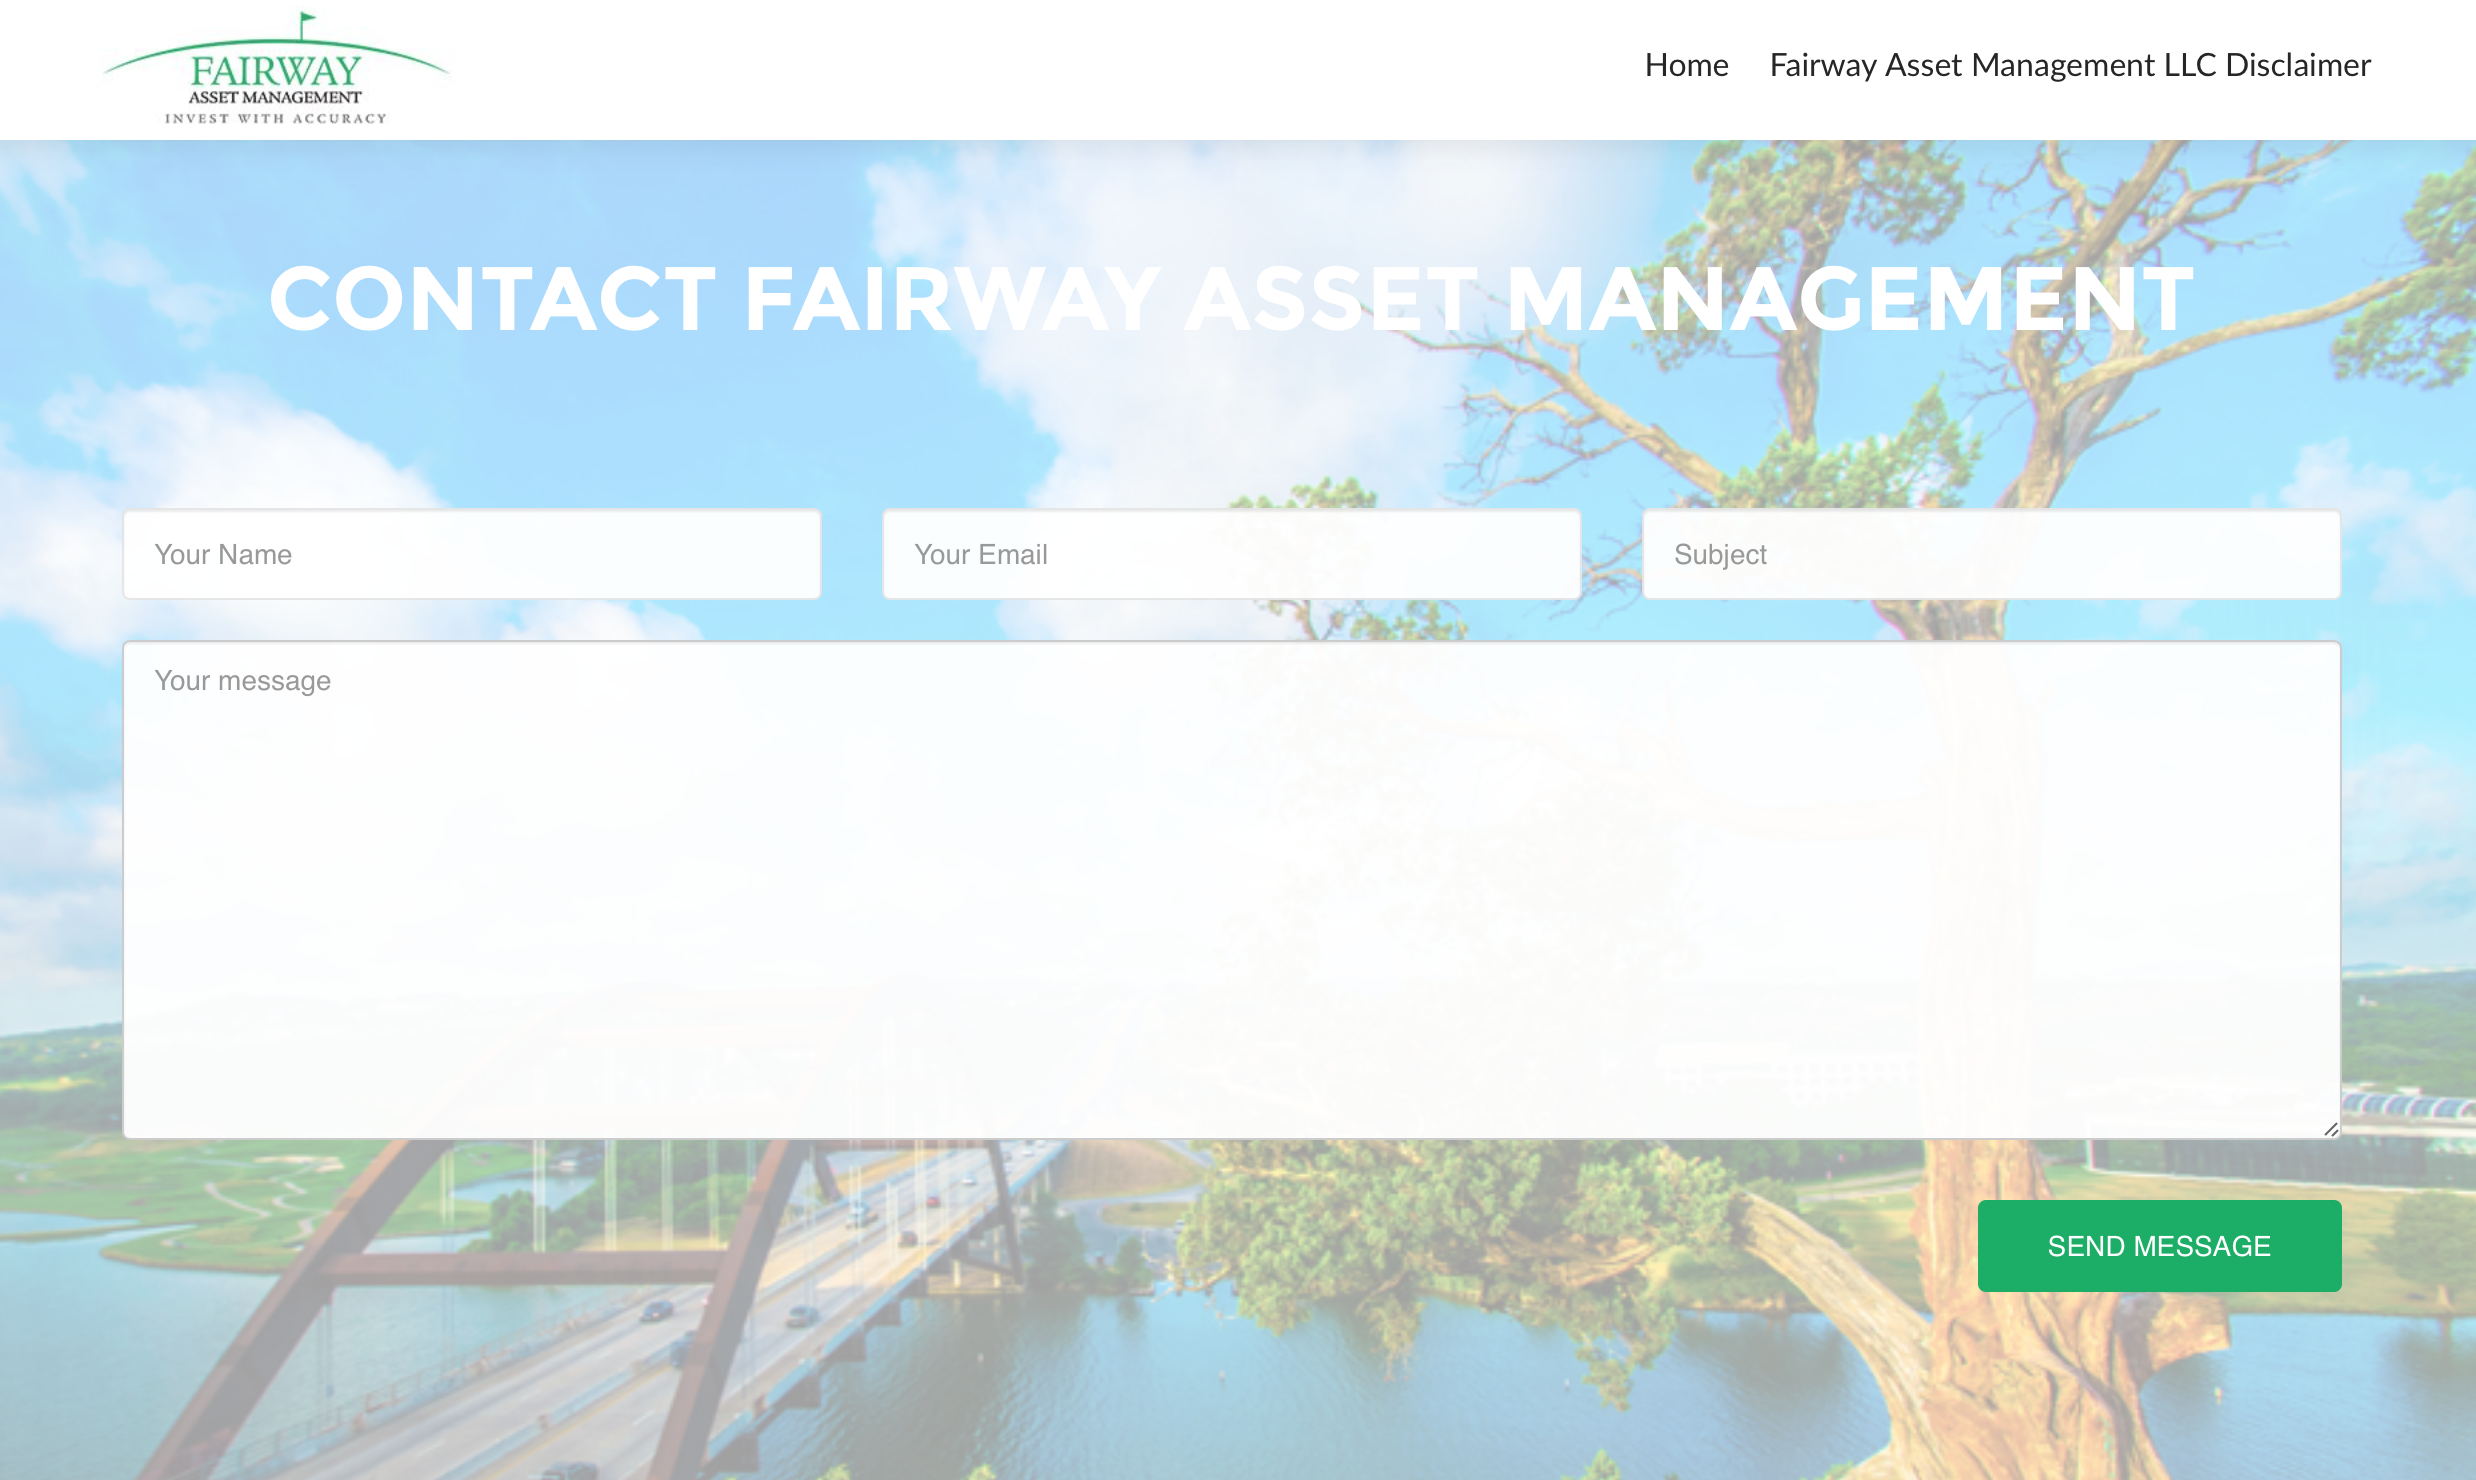 Jason Riley, Fairway Asset Management